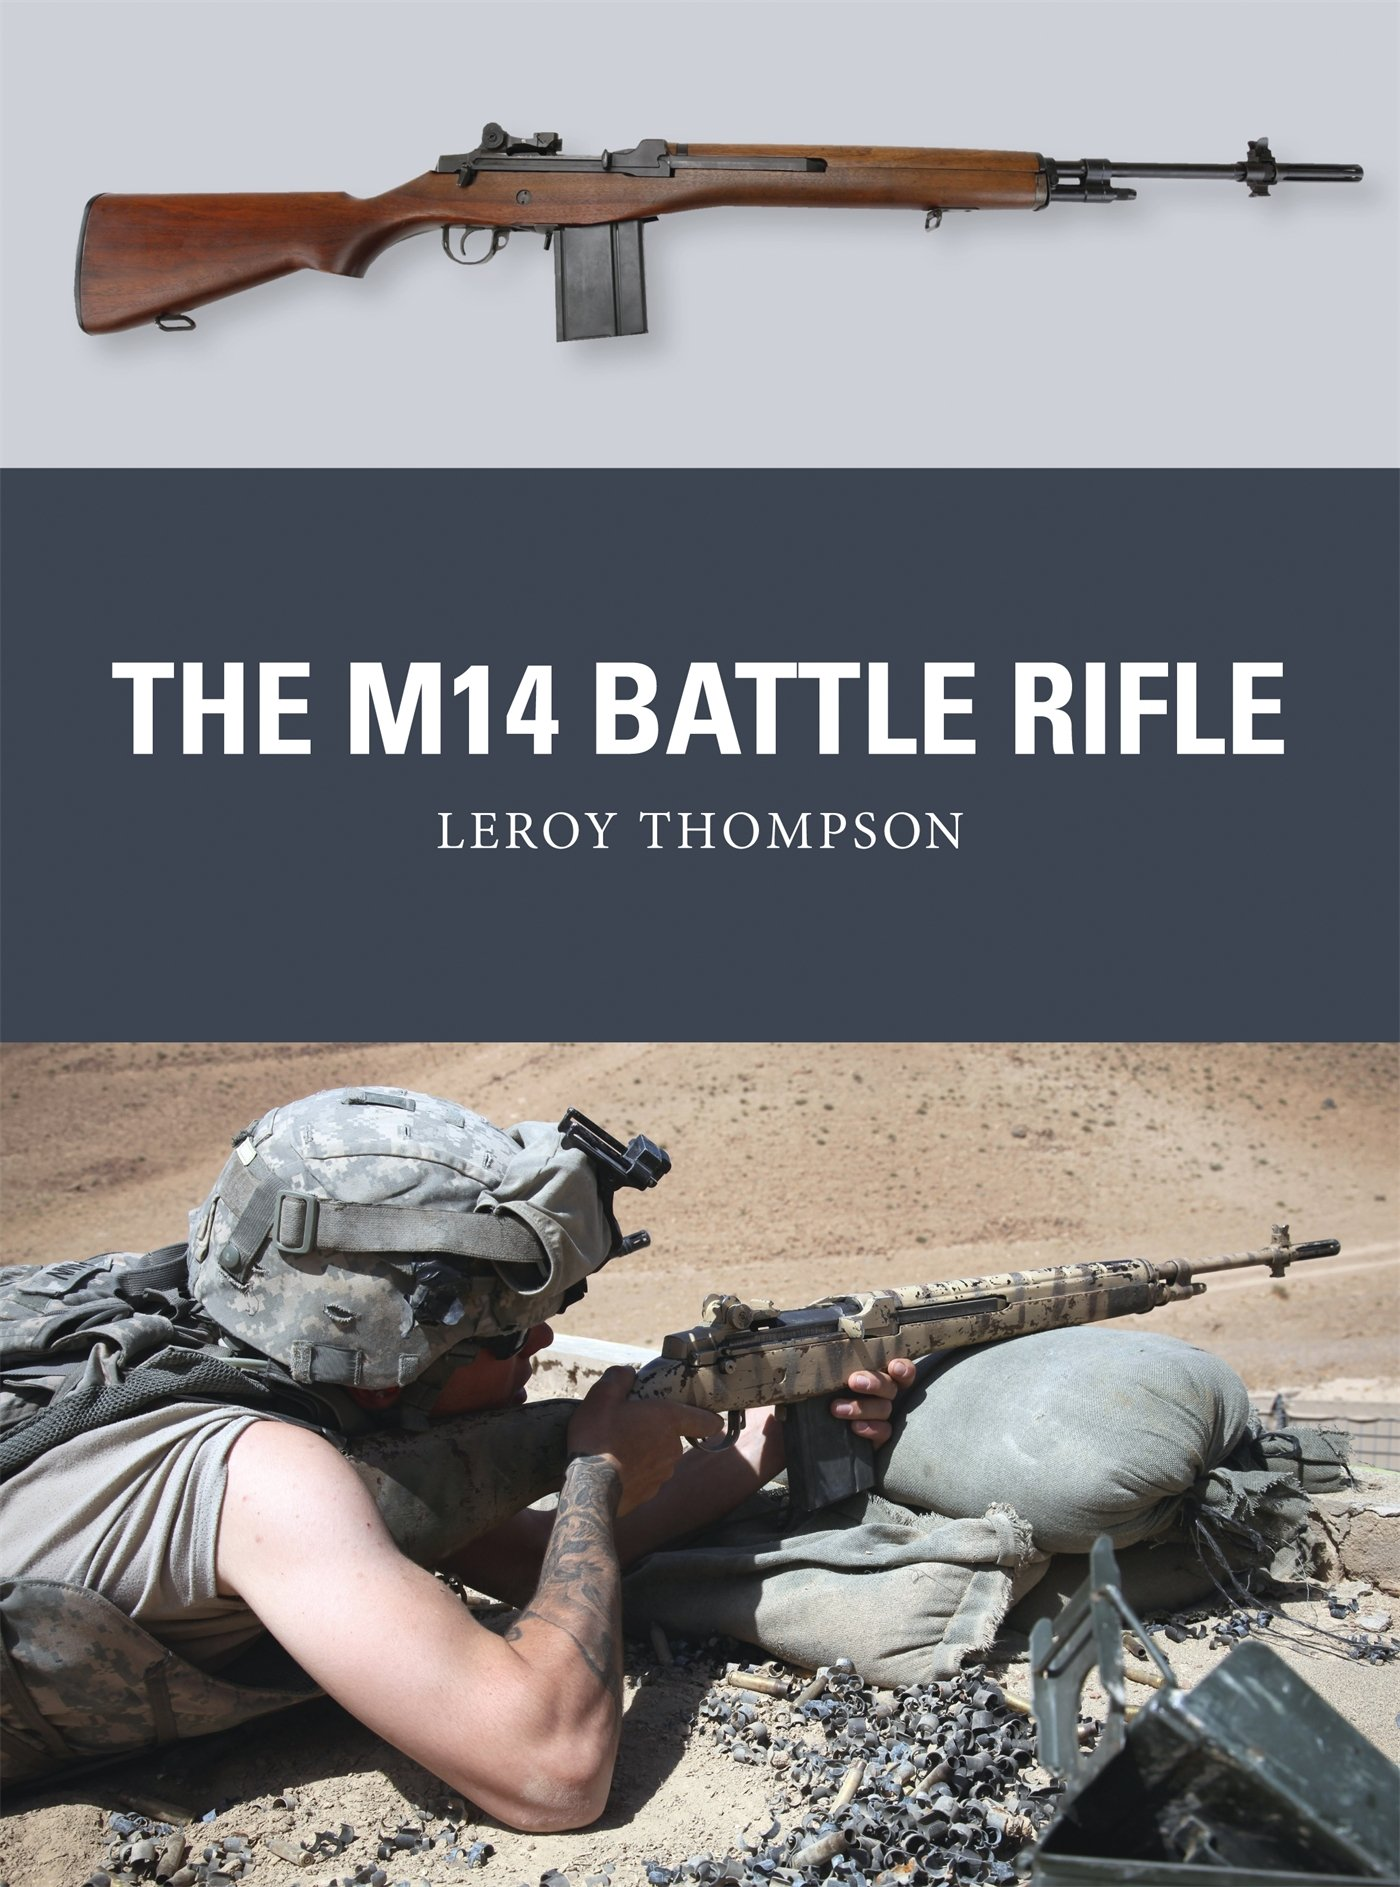 the m14 battle rifle (weapon) leroy thompson, johnny shumate, alanfollow the author